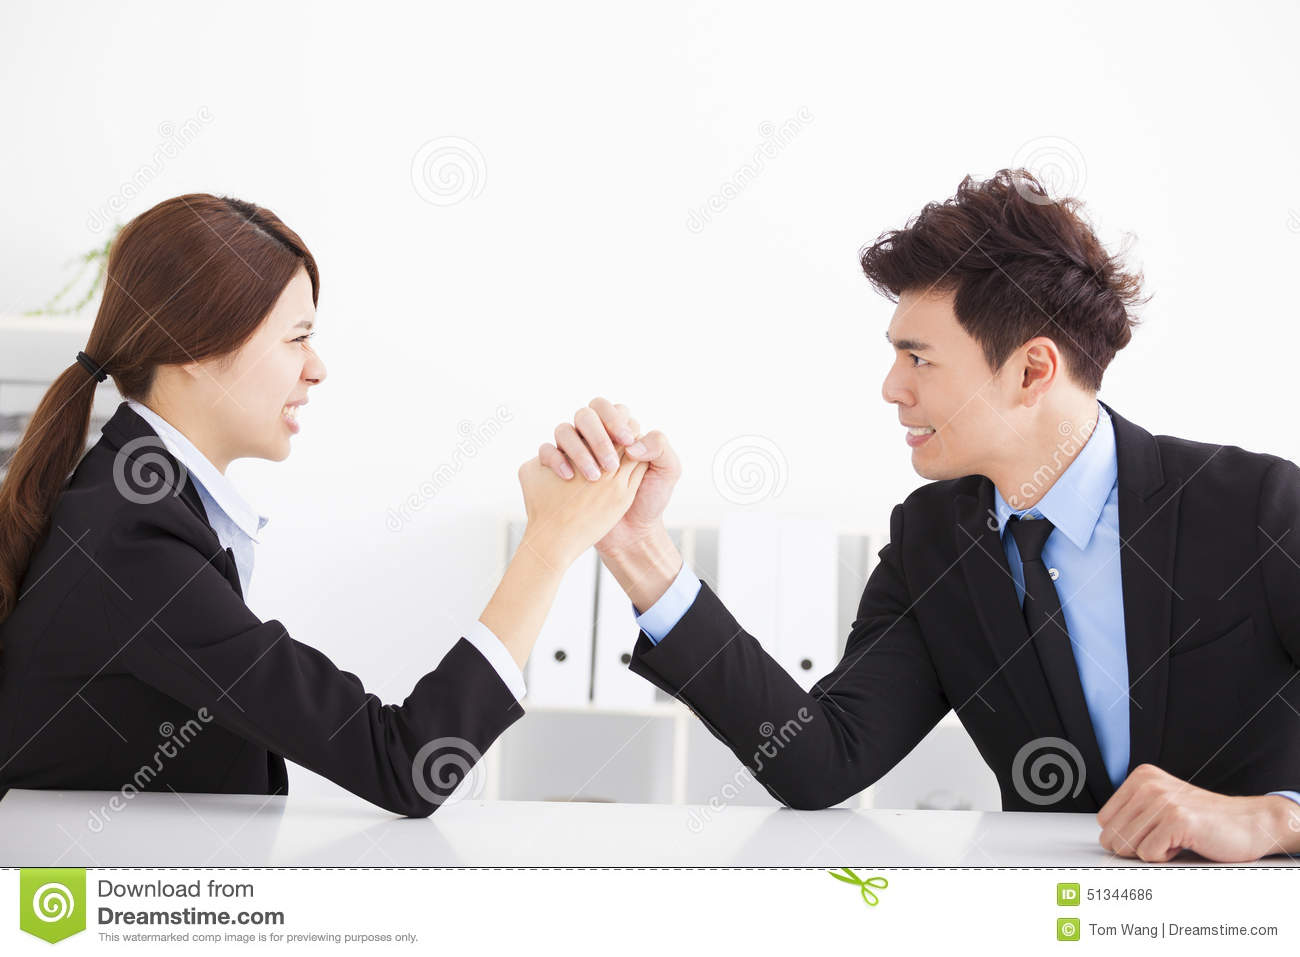 Business Man And Woman Arm Wrestling Stock Photo - Image: 51344686